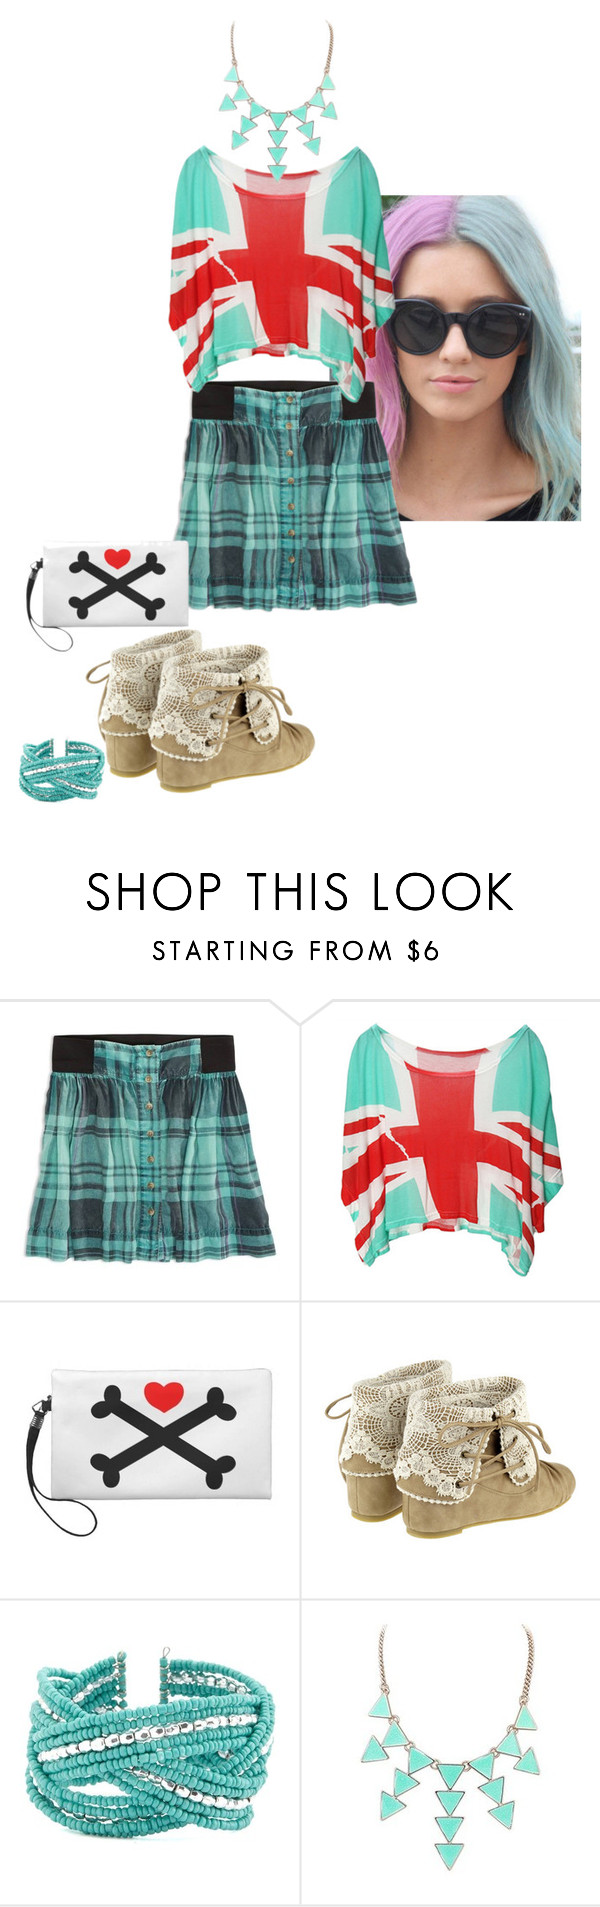 """""""Pink and Blue Etc"""" by prettyroses ❤ liked on Polyvore featuring American Eagle Outfitters, Charlotte Russe, women's clothing, women, female, woman, misses and juniors"""